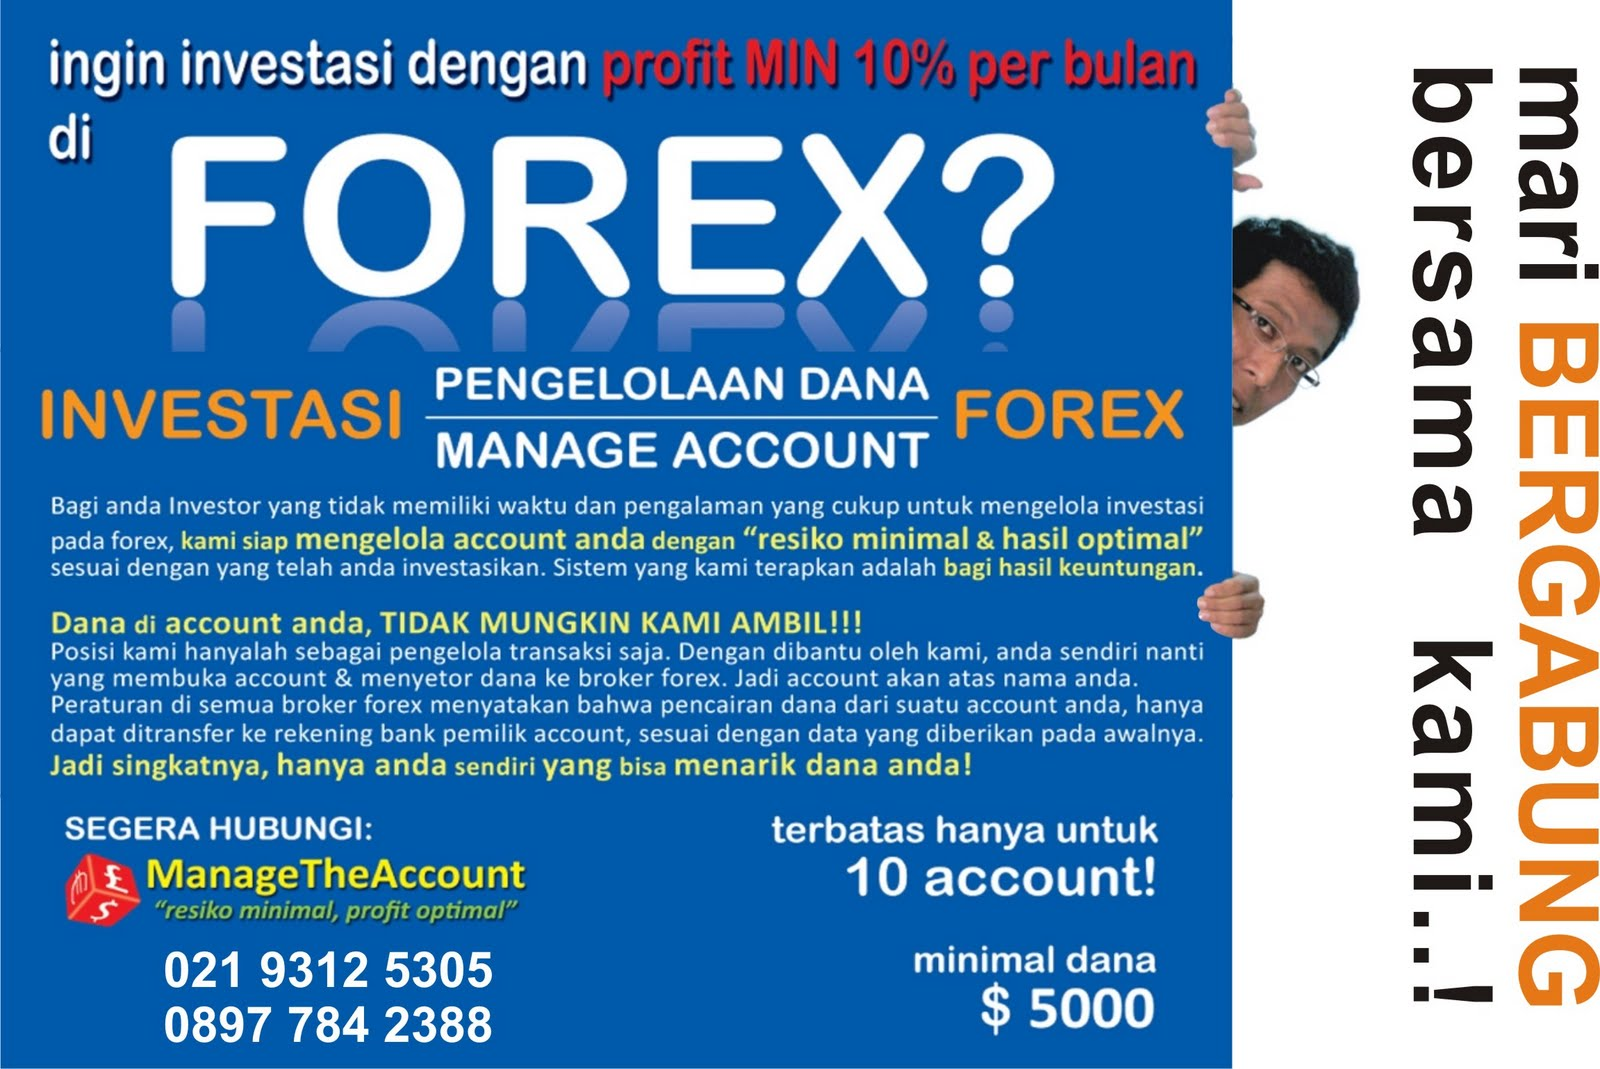 Free forex trading chat room